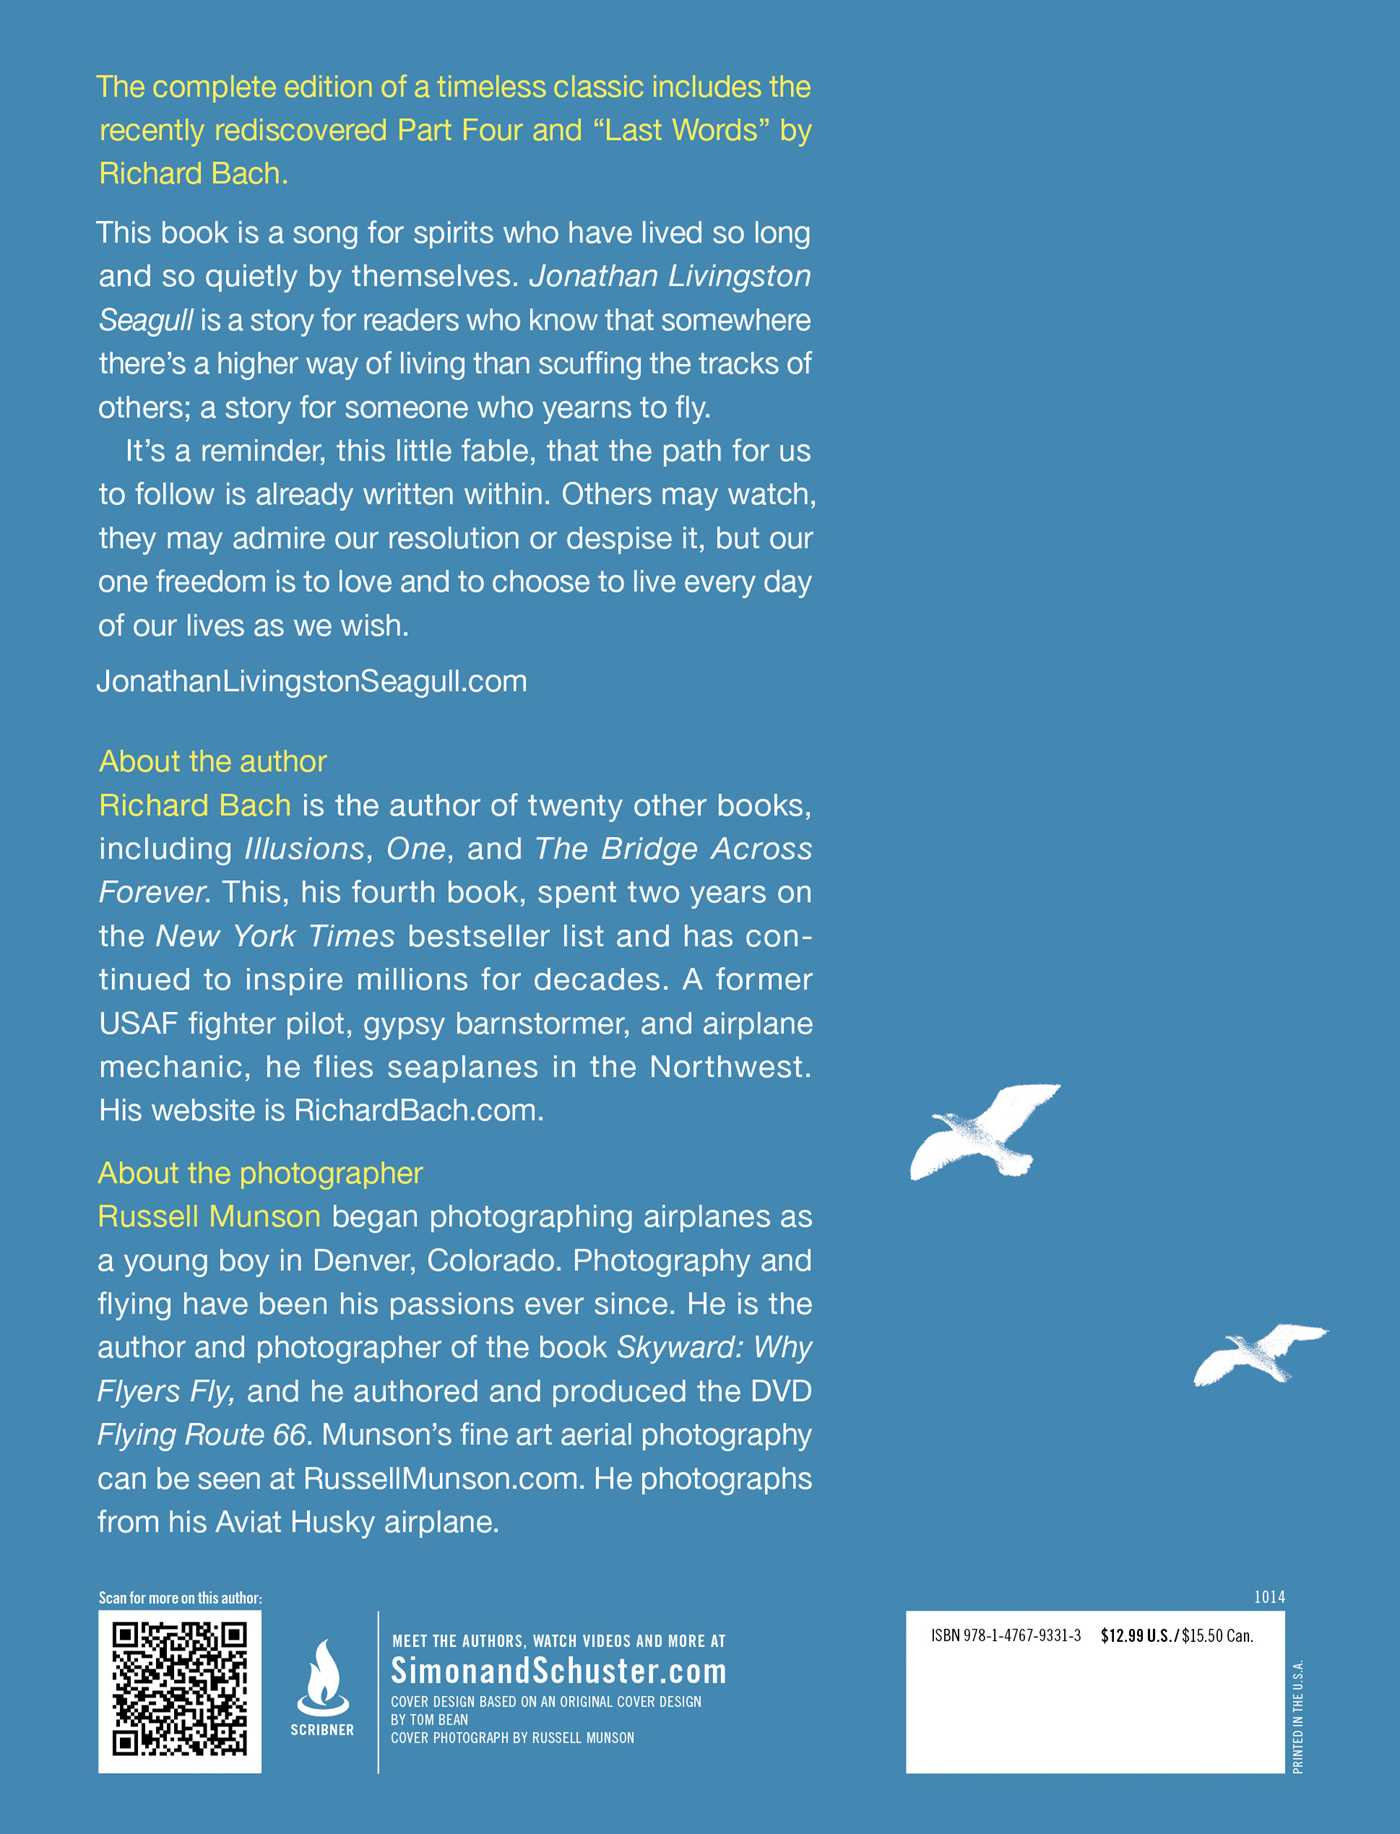 jonathan livingston seagull literary analysis Kind heart productions has created a modern and uniquely engaging way to experience jonathan livingston seagull as an interactive audio book app for mobile devices you can learn more about the jonathan livingston seagull 1 app and download it by clicking the links below get the app on google play get the app.